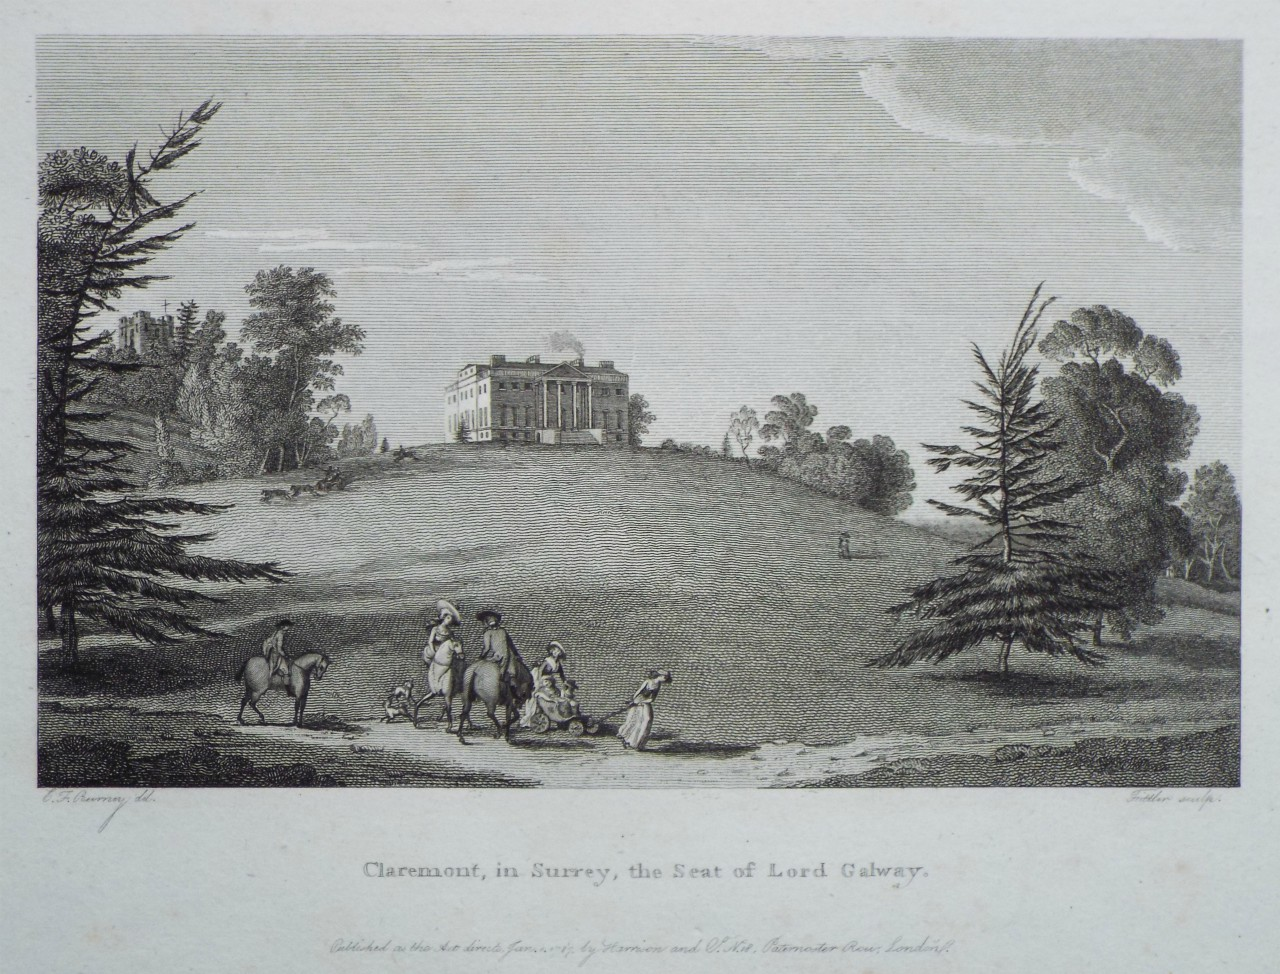 Print - Claremont, in Surrey, the Seat of Lord Galway. -